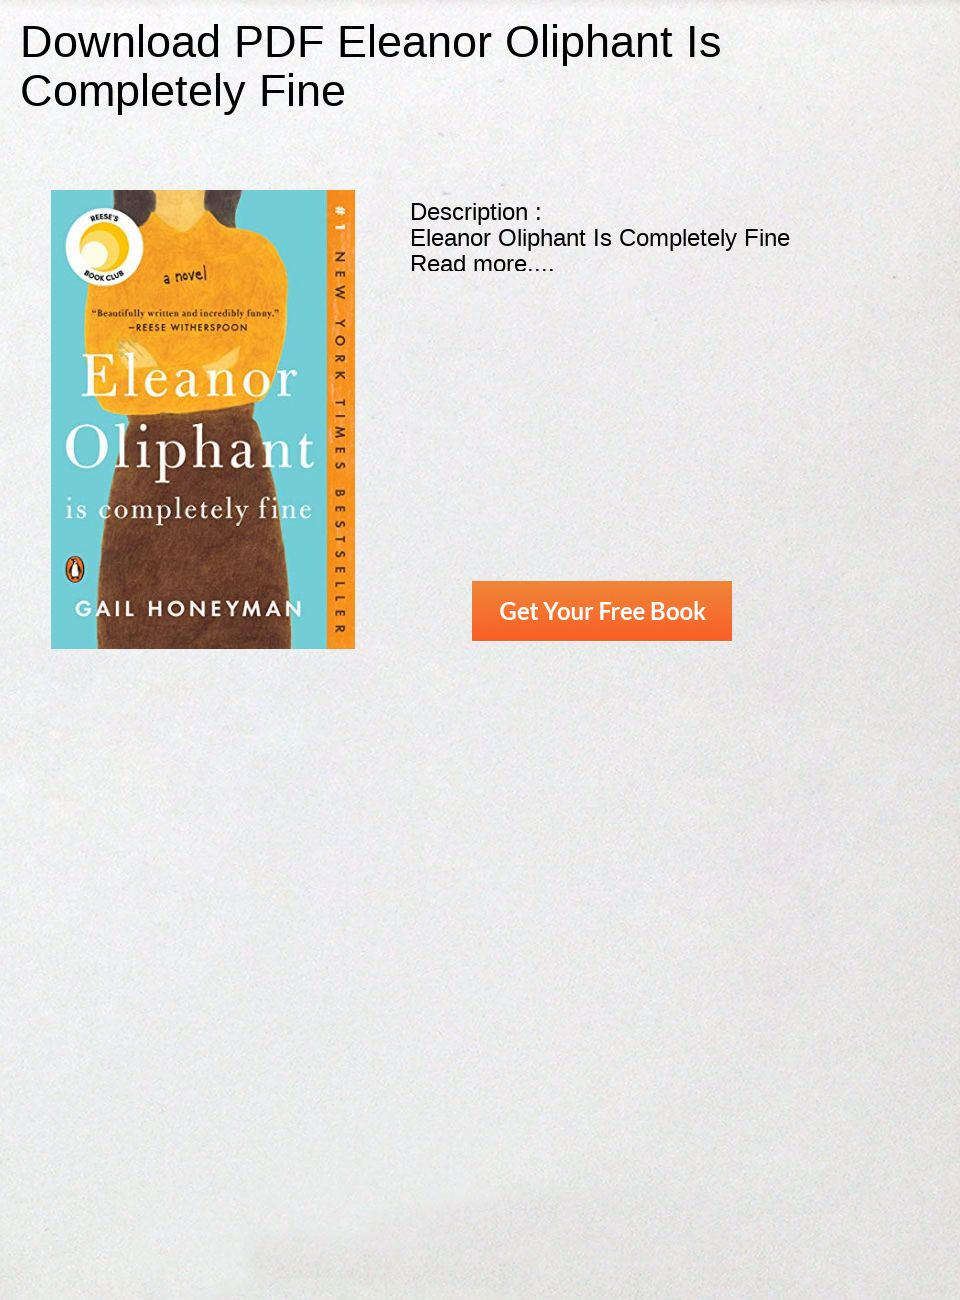 Eleanor Oliphant Is Completely Fine Pdf